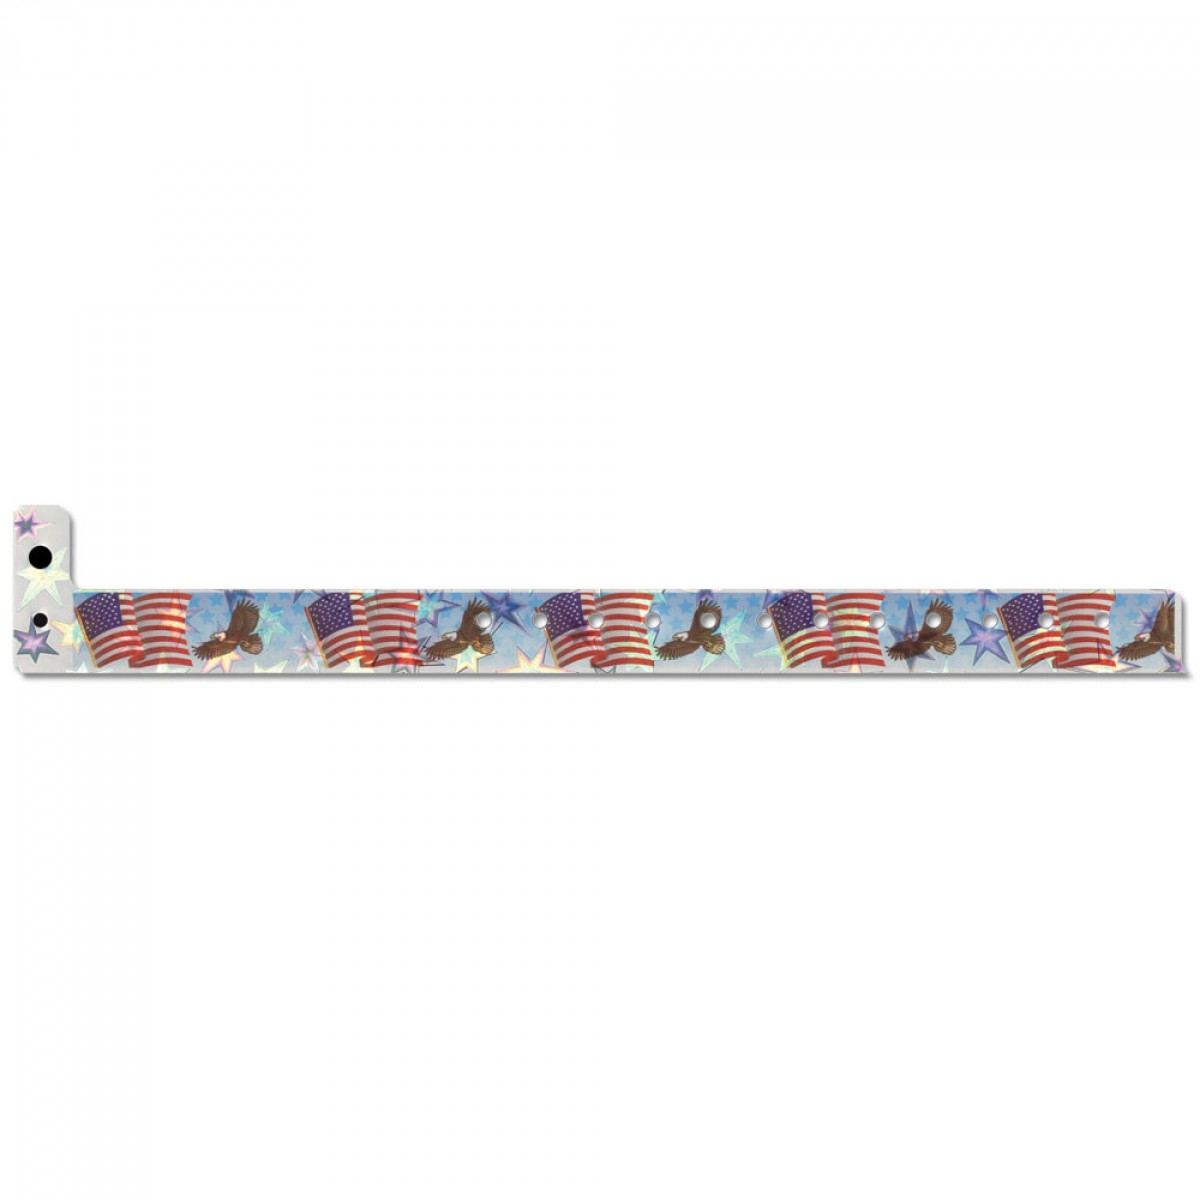 Holographic Plastic American Eagle Wristbands